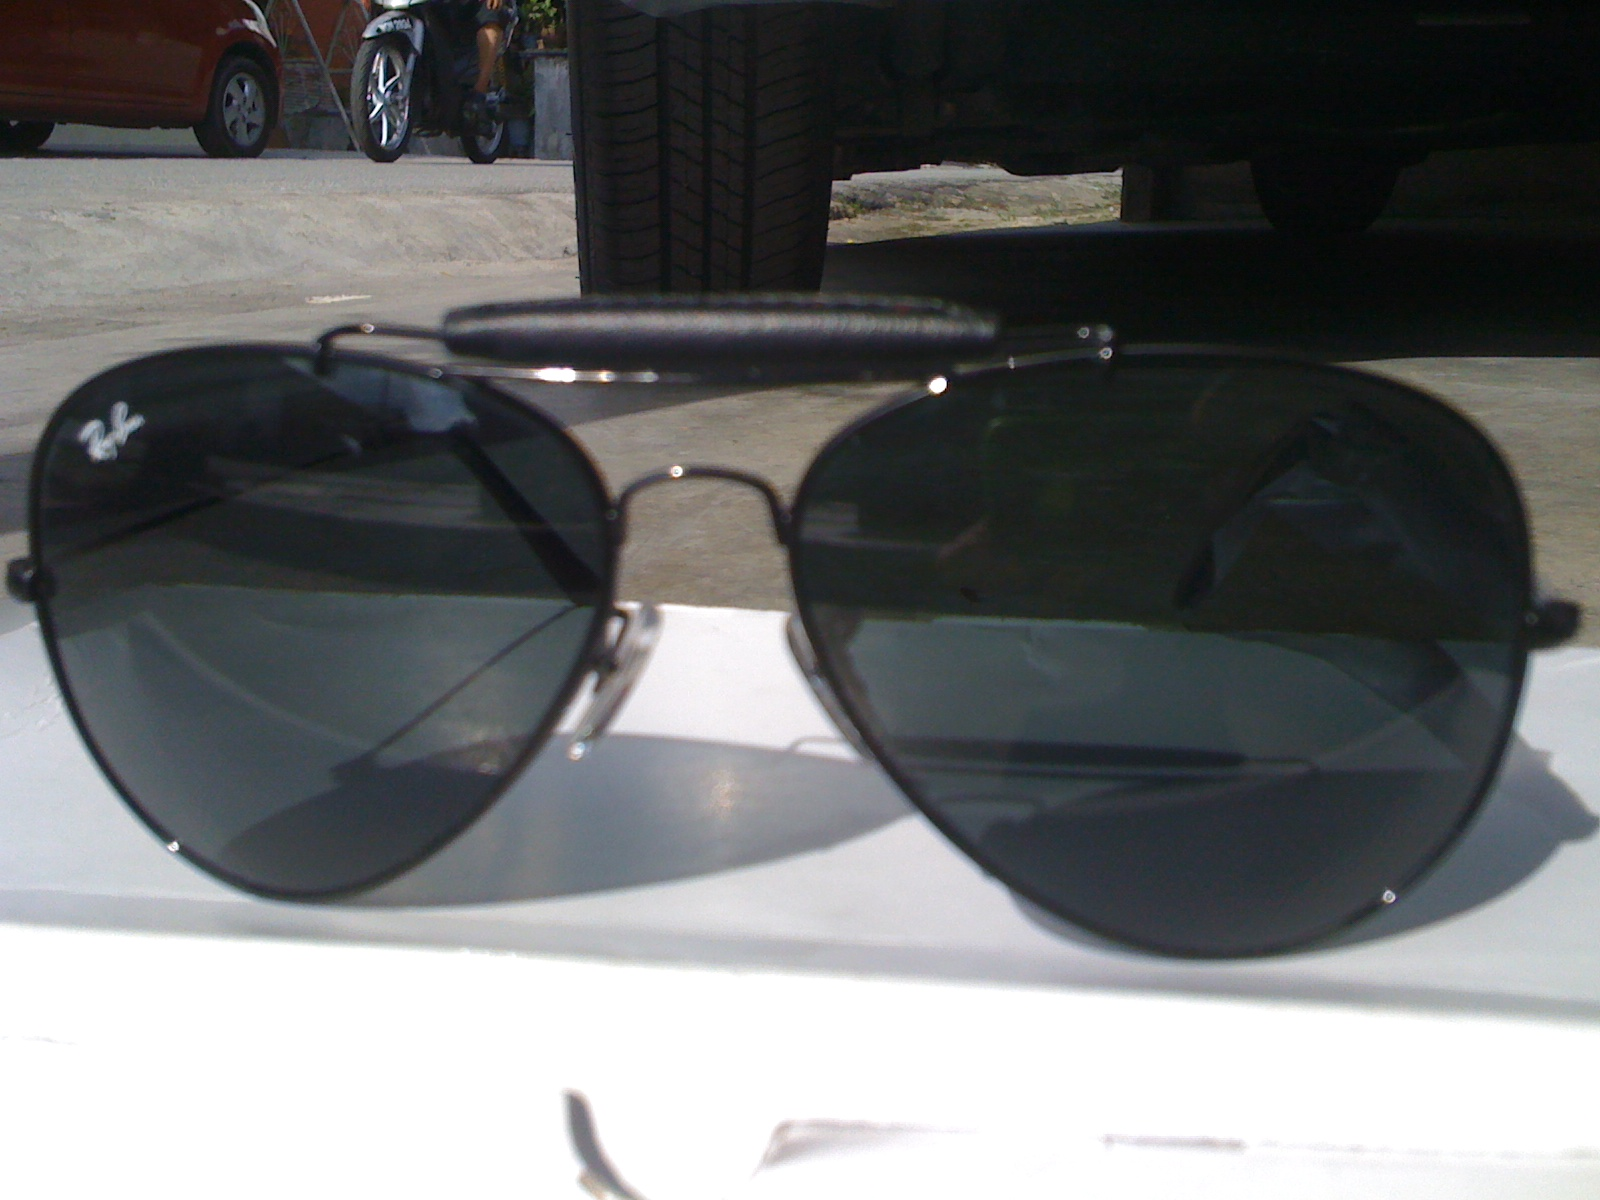 ray ban made in italy dz8e  ray ban 5121 made in italy